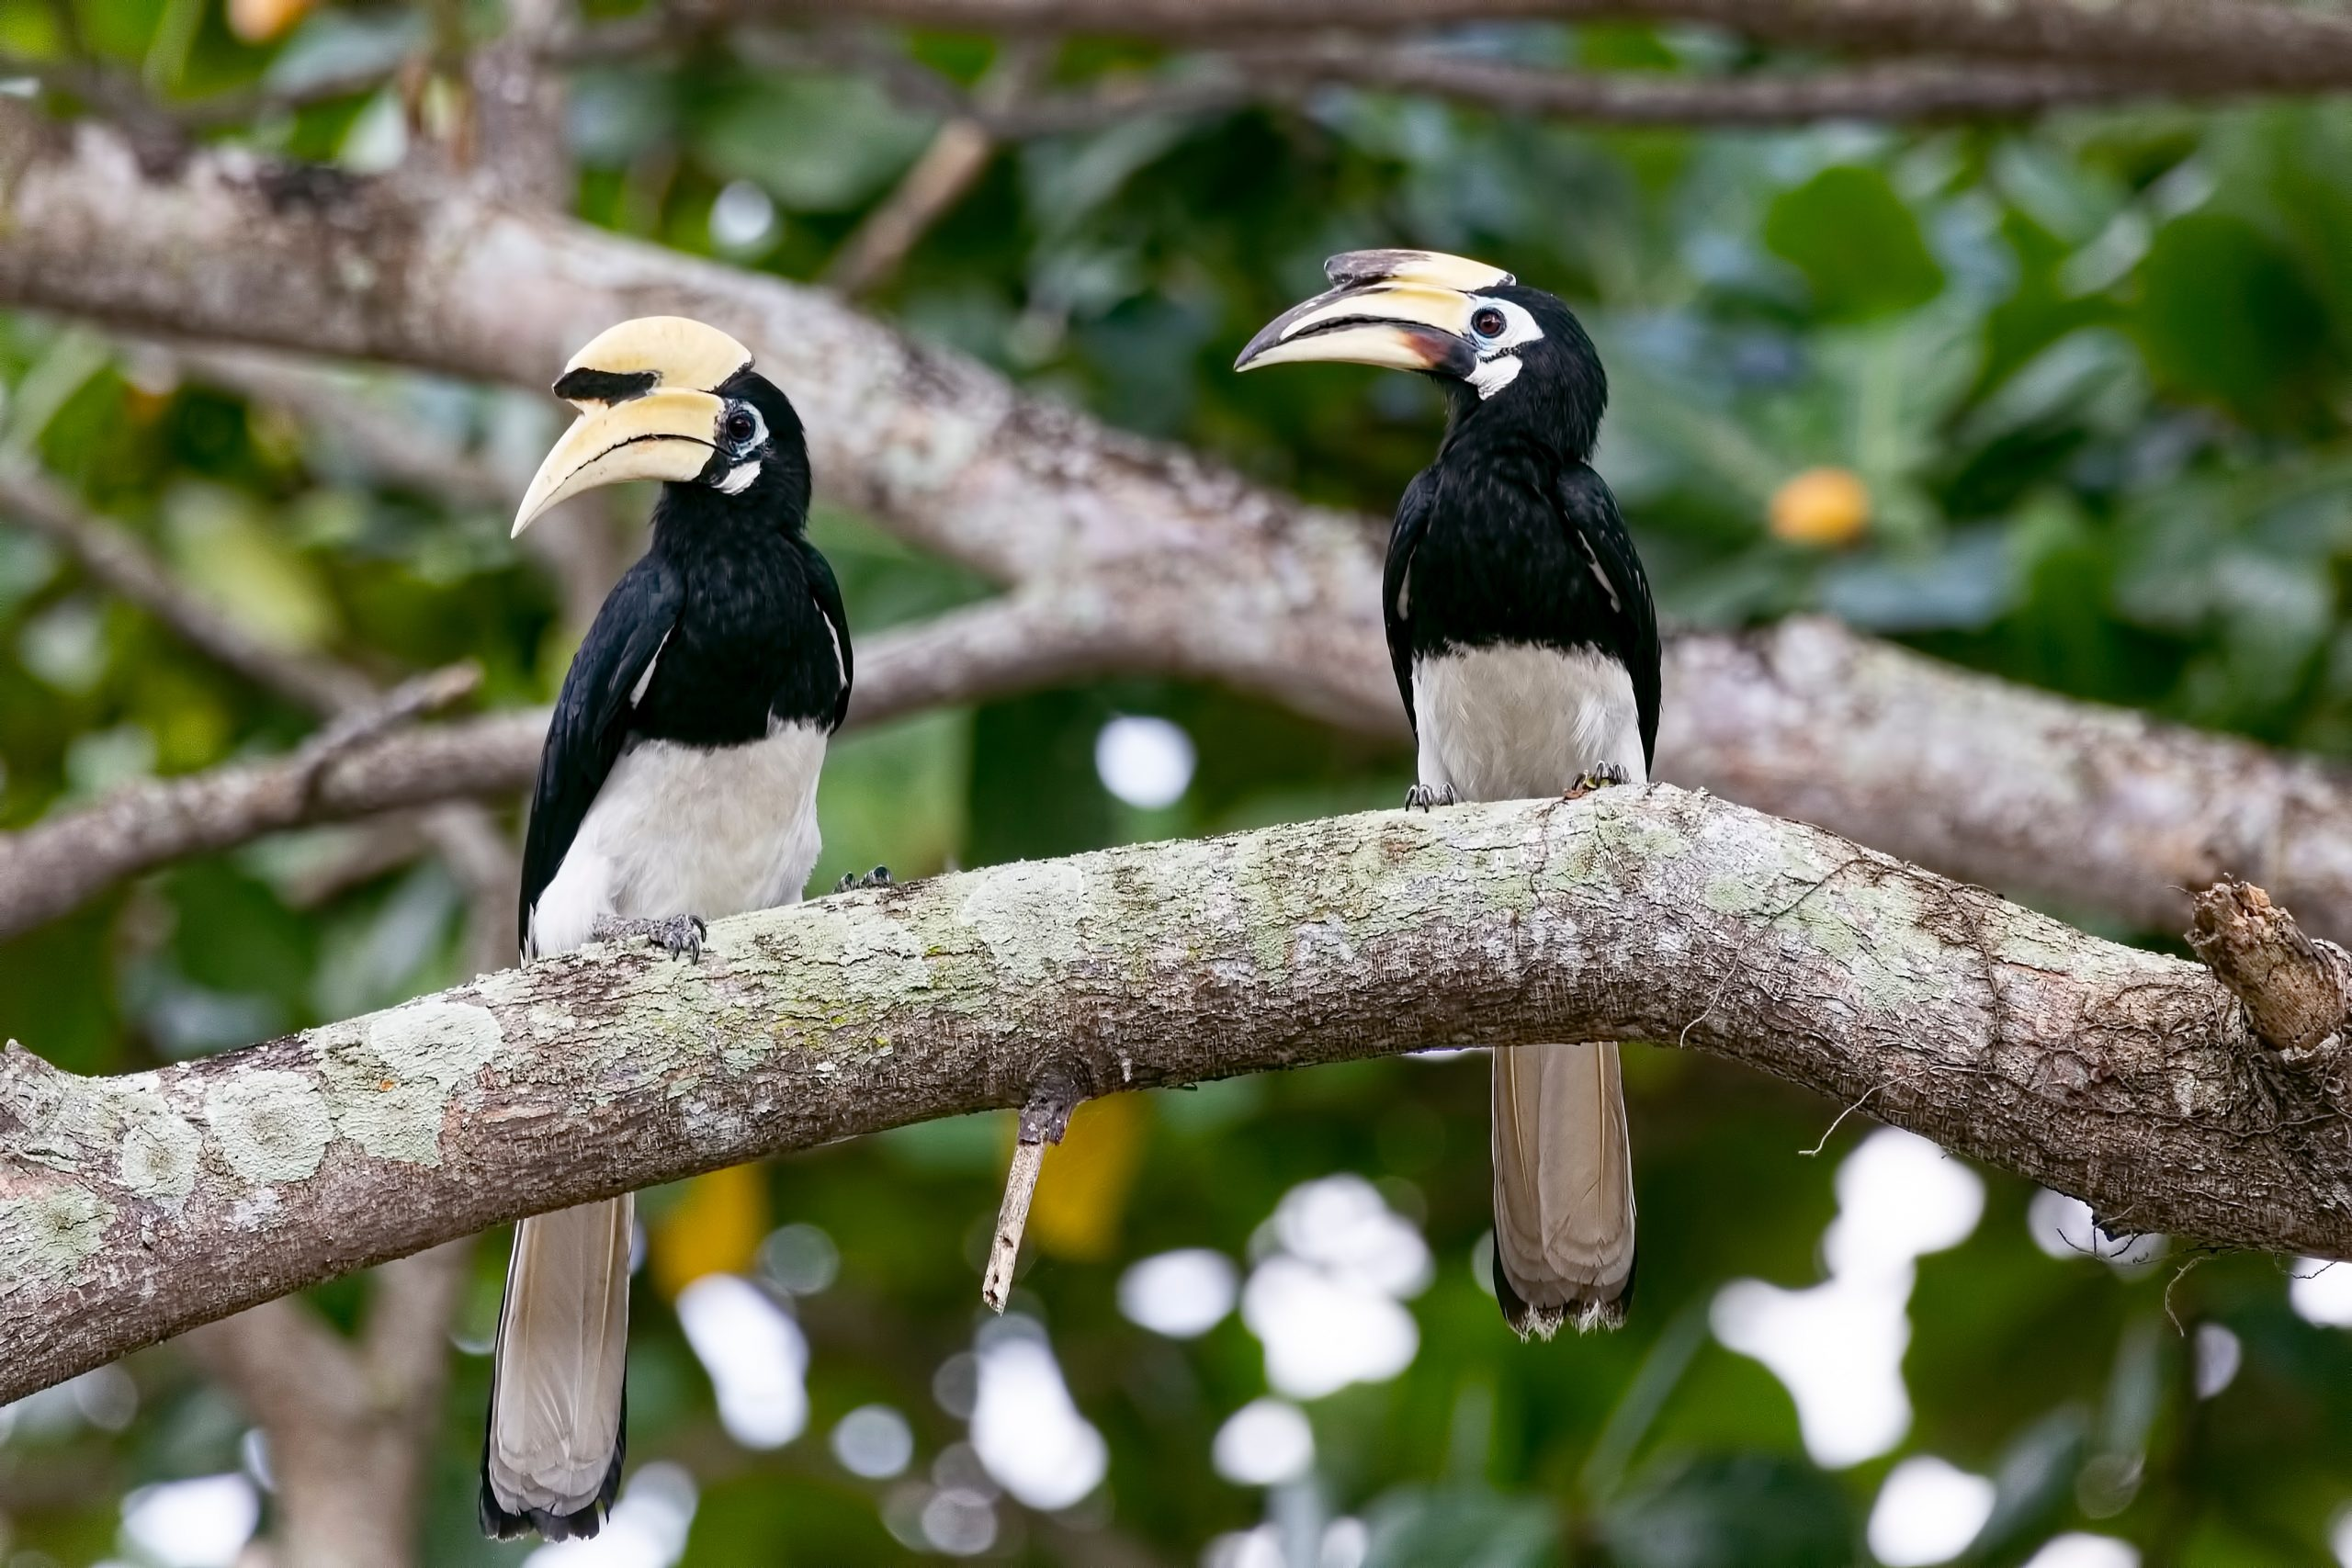 Capture a snapshot of the exotic hornbill - Ecotourism in Malaysia